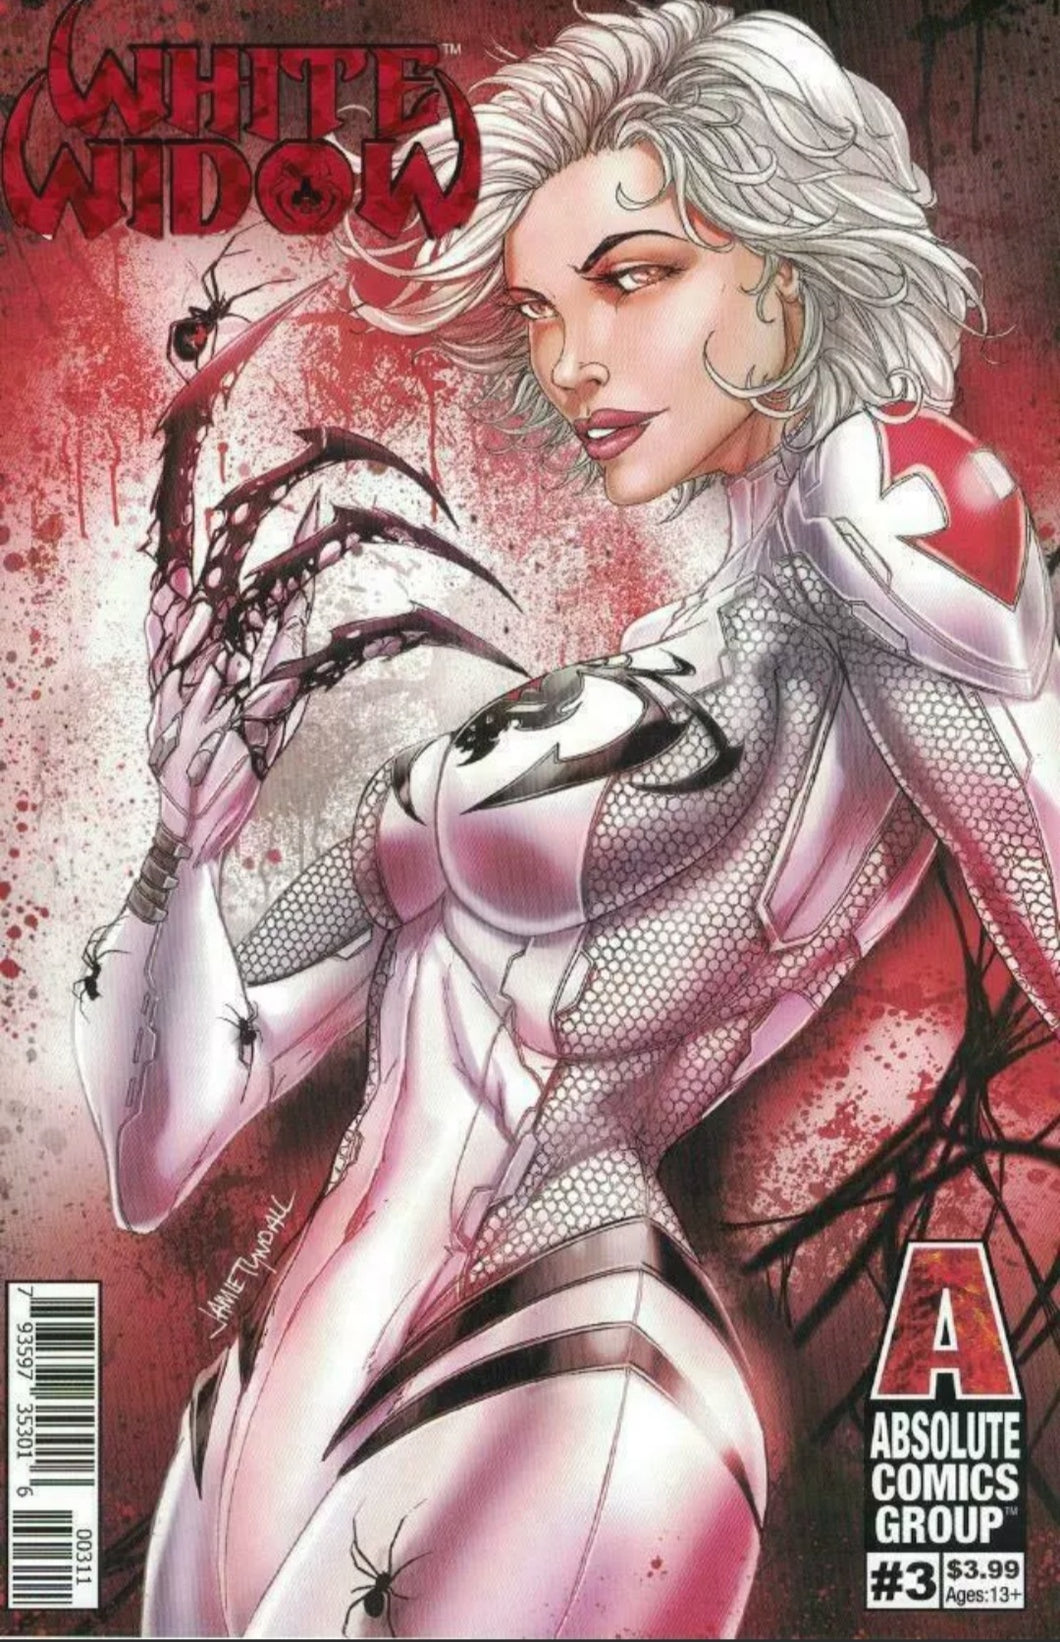 💋 White Widow #3 Claws Out Retail by Jamie Tyndall